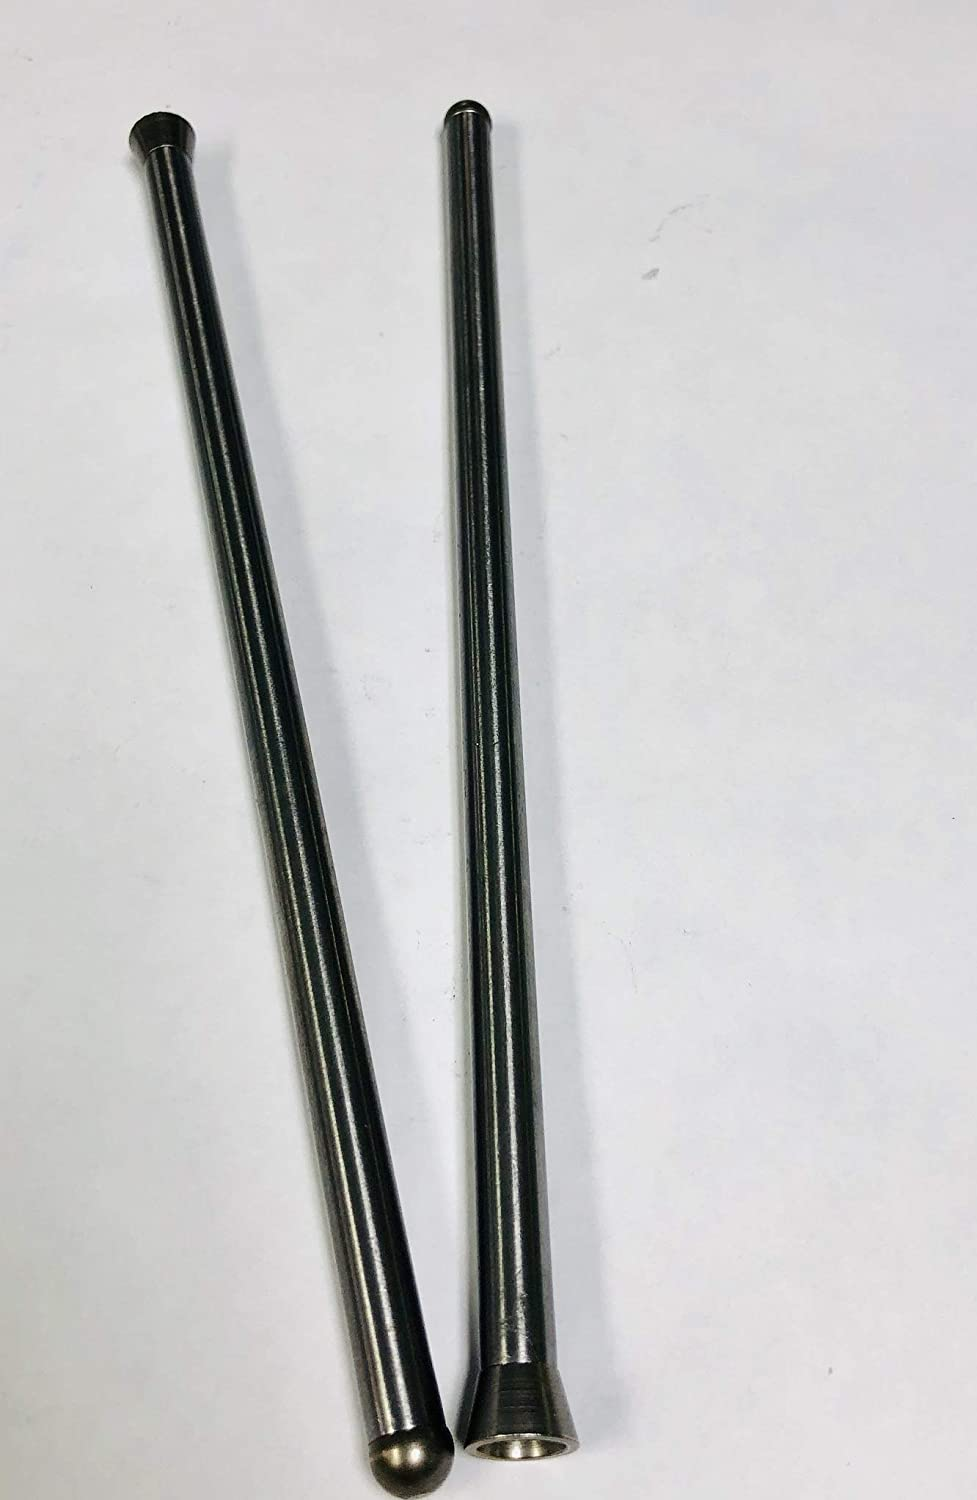 16 Elgin 11//32 x 9.340 length Pushrod Set of compatible with 1957-67 Edsel Ford Mercury 332 352 390 410 427 428 with mechanical lifters